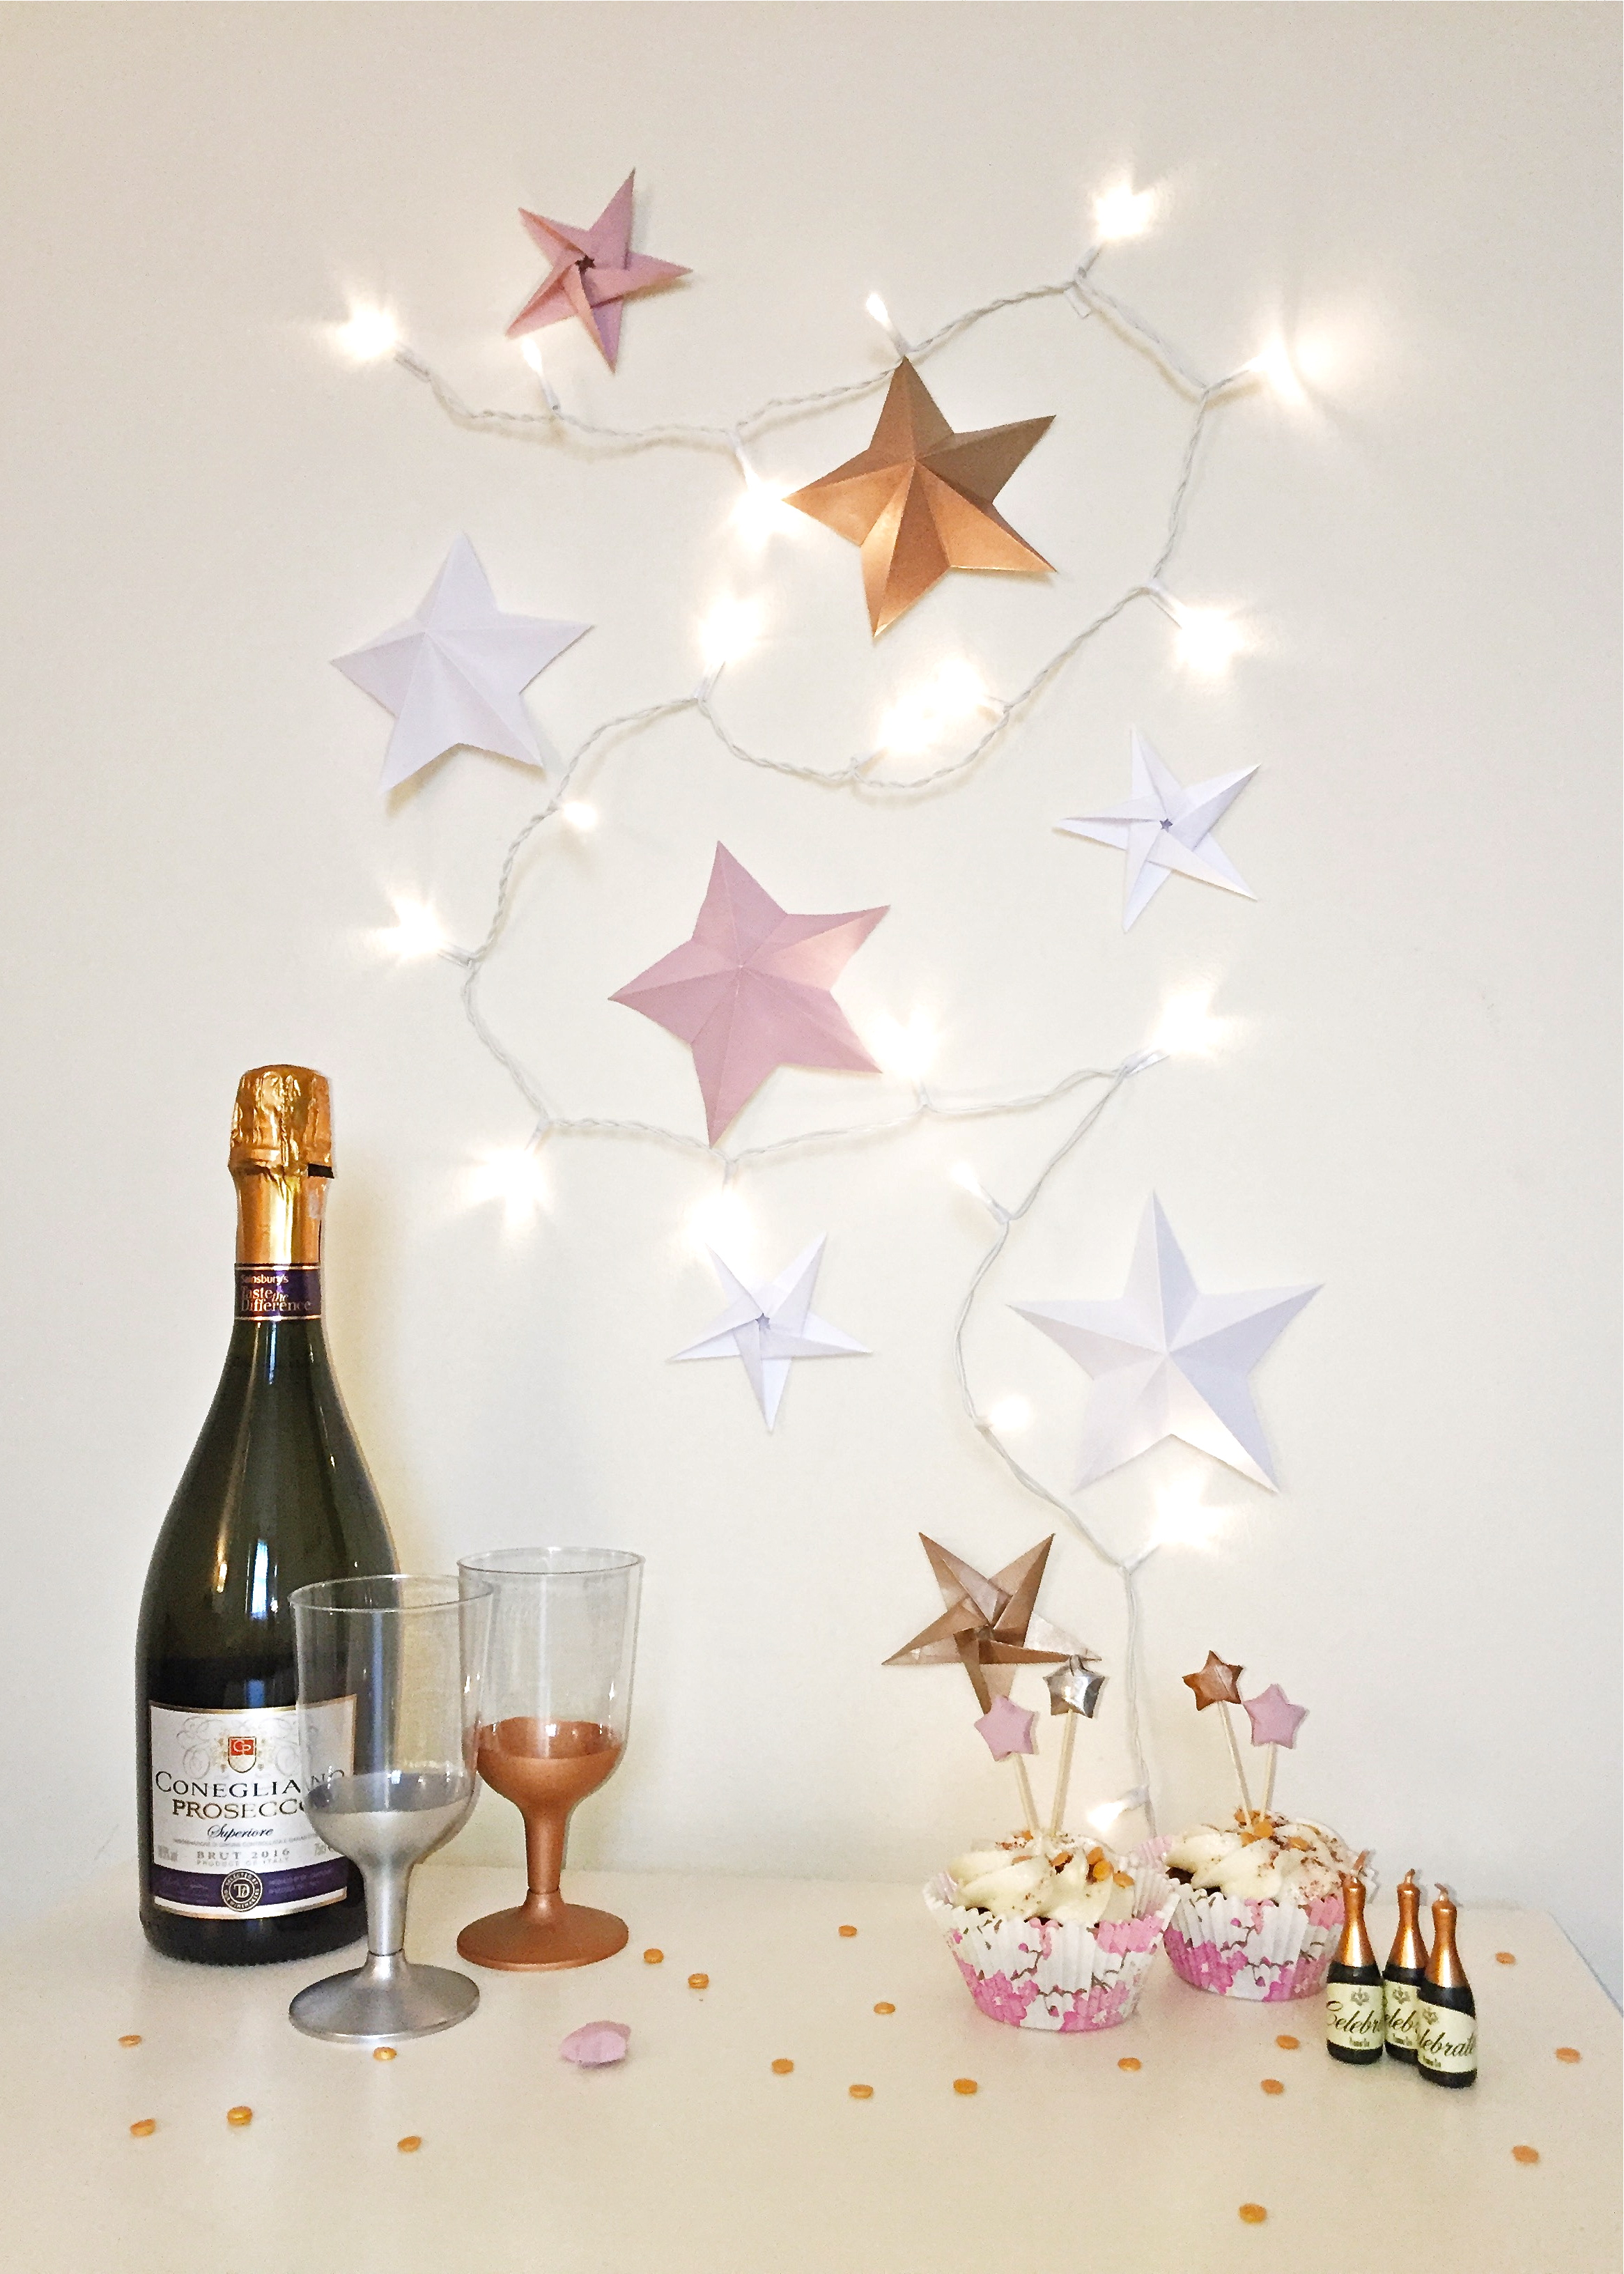 5 Minute DIY - Metal-dipped Party Glasses by Isoscella